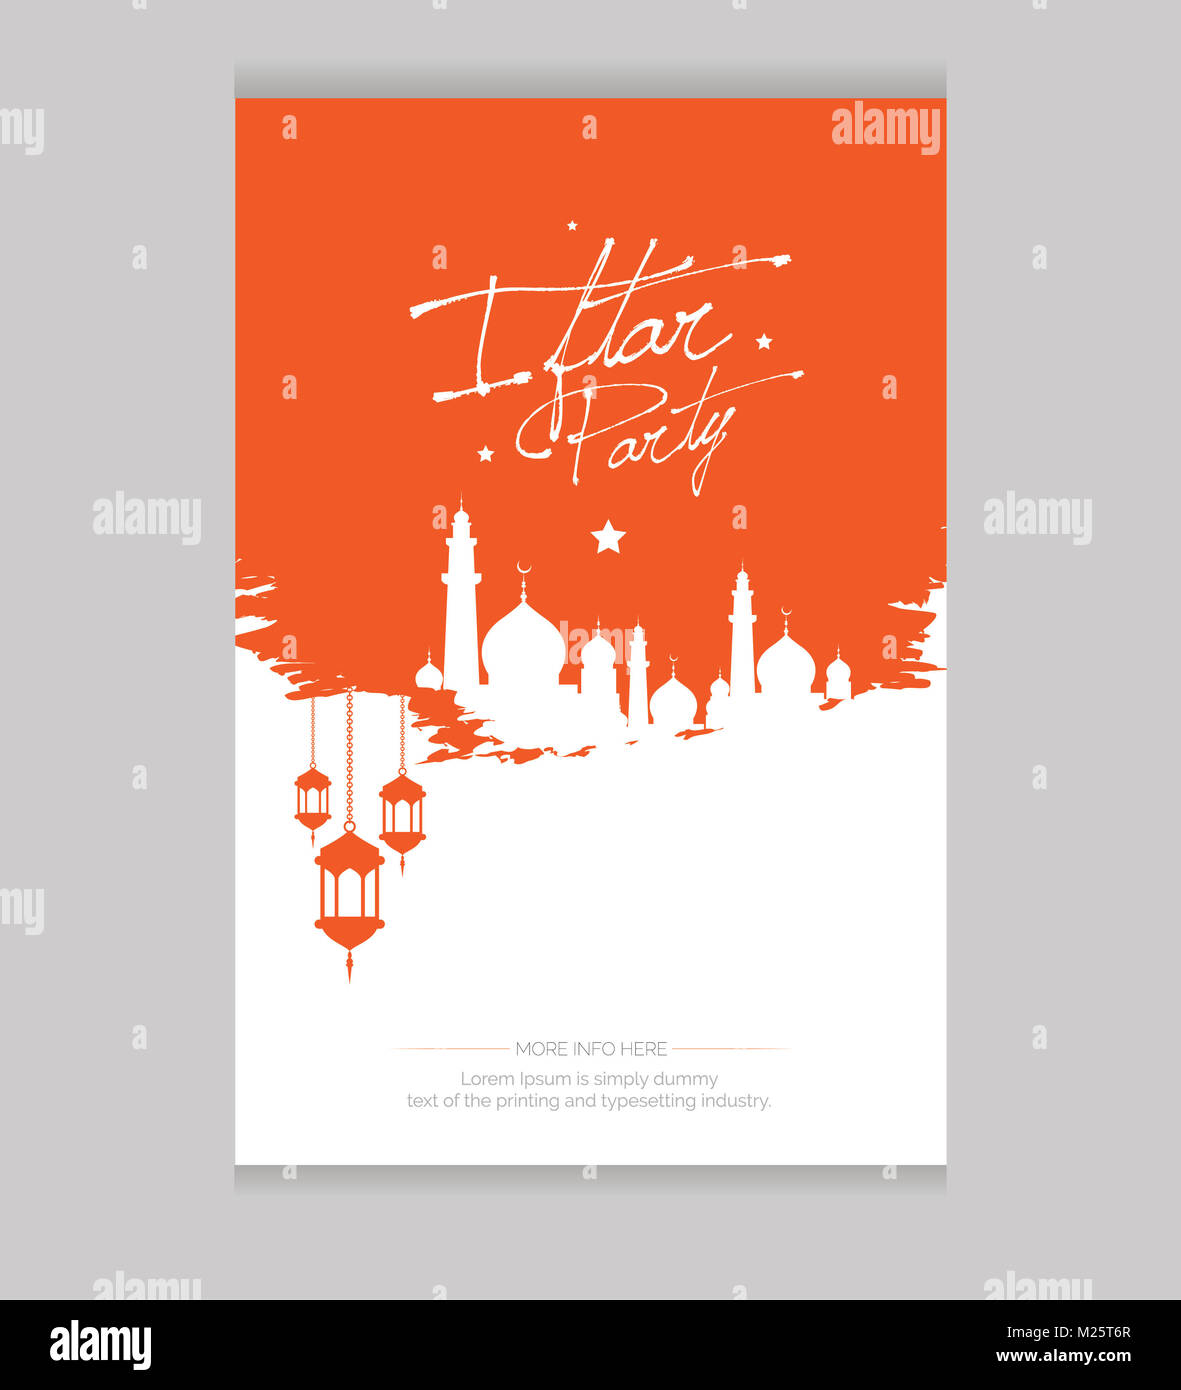 Islamic traditional iftar party invitation card background design islamic traditional iftar party invitation card background design vector illustration stopboris Images